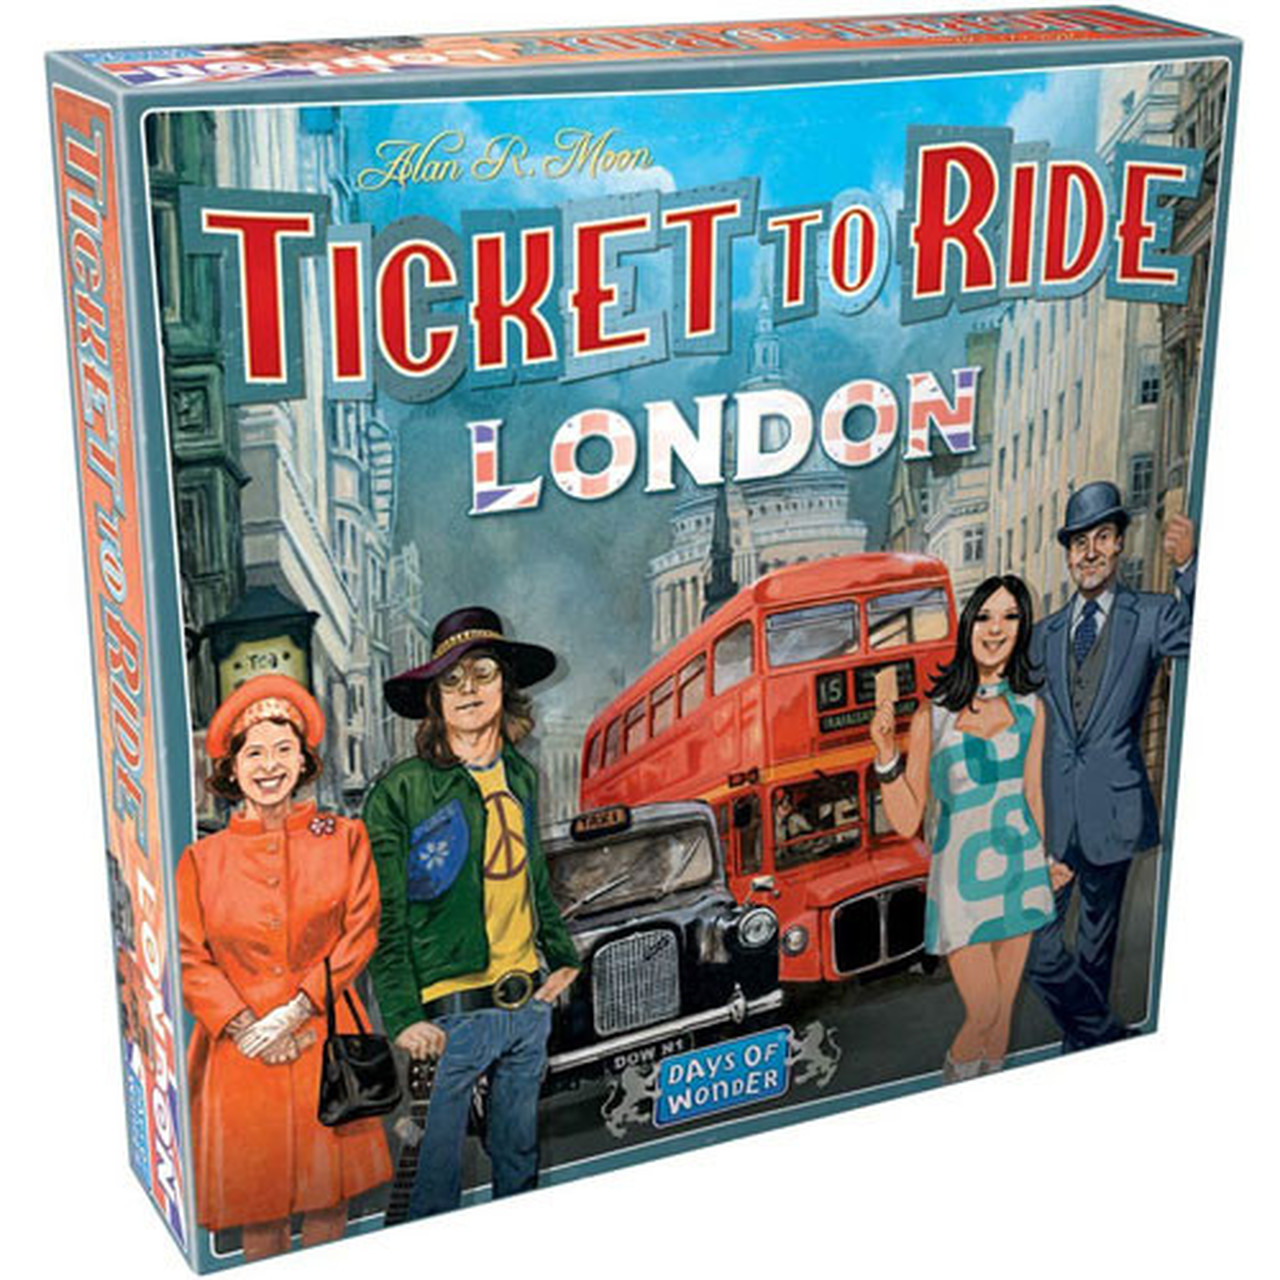 DO7261 - Ticket to Ride: London